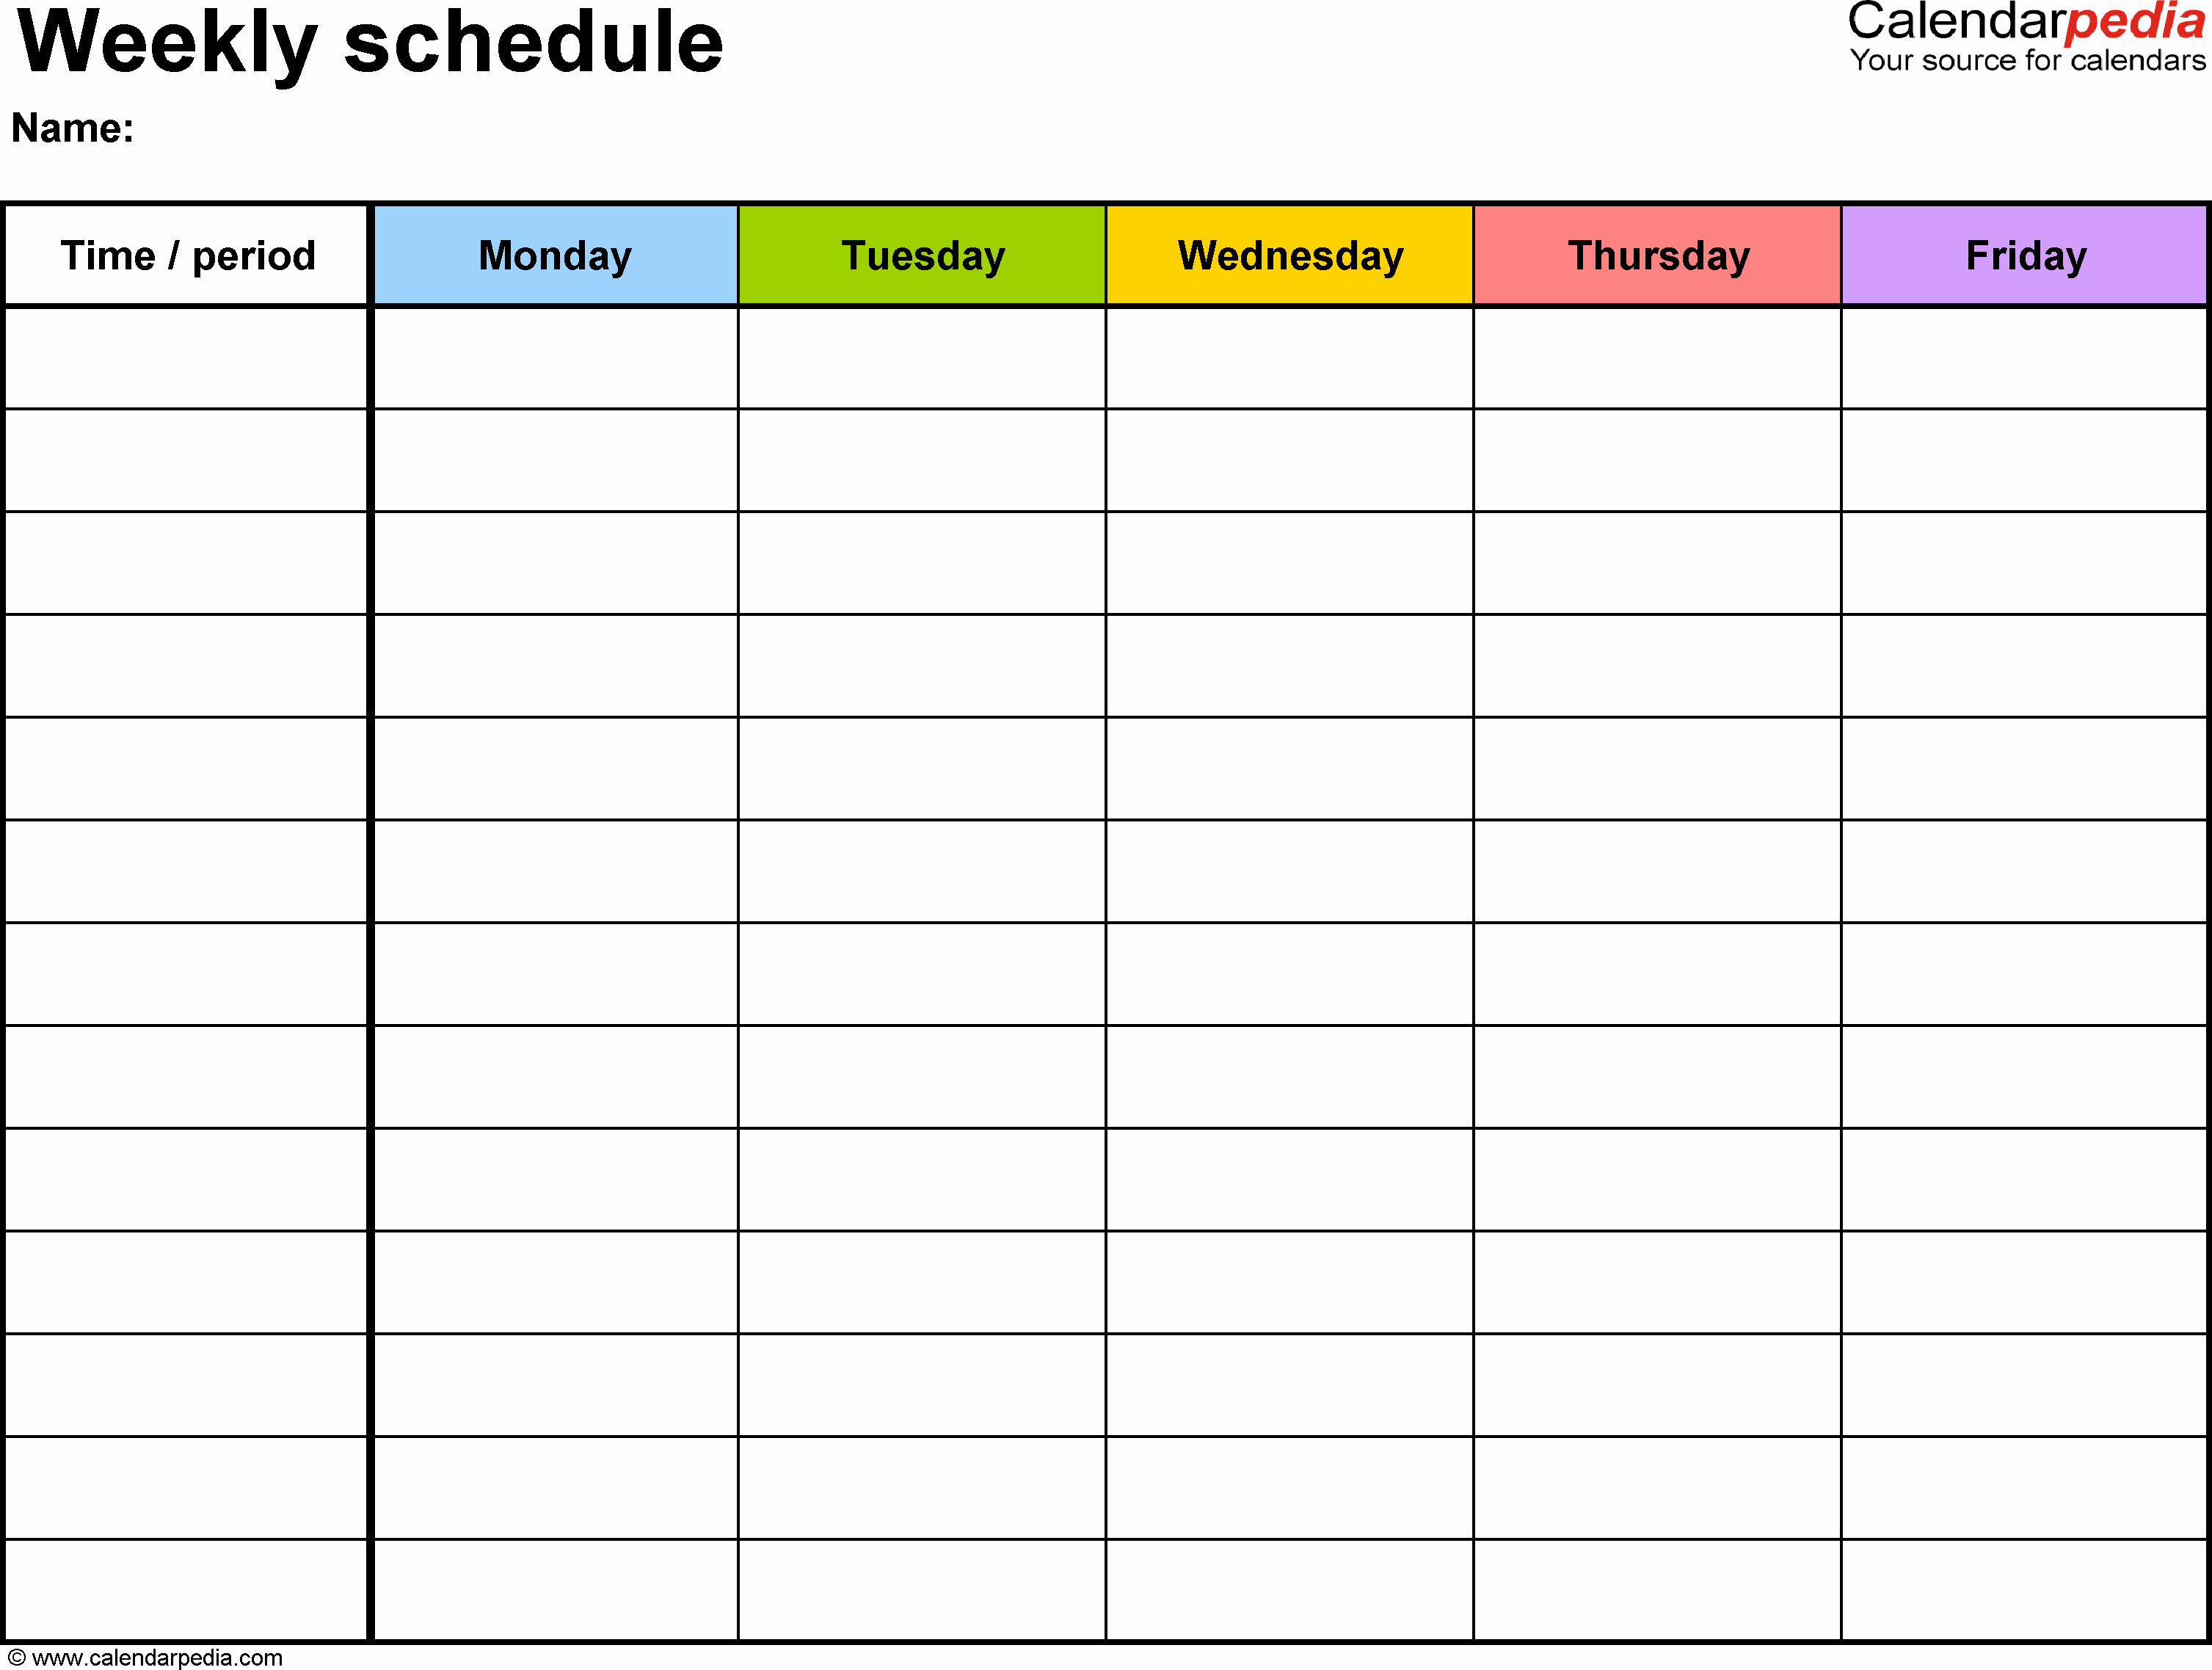 Week Schedule Template Pdf Beautiful Weekly Calendar Pdf